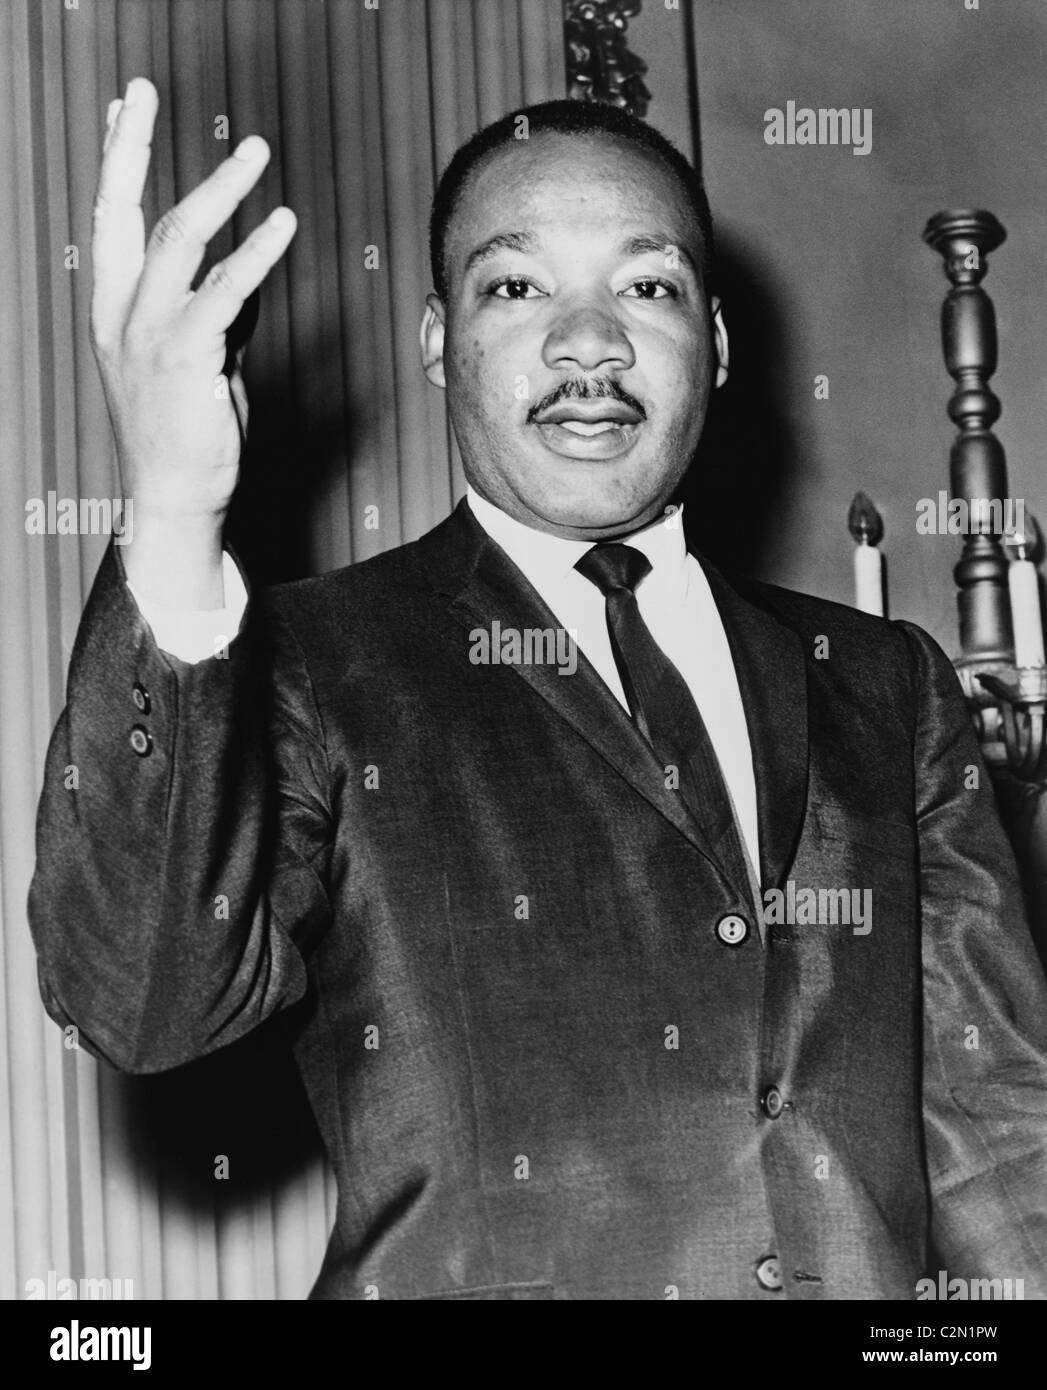 Dr. Martin Luther King, Jr. - Stock Image